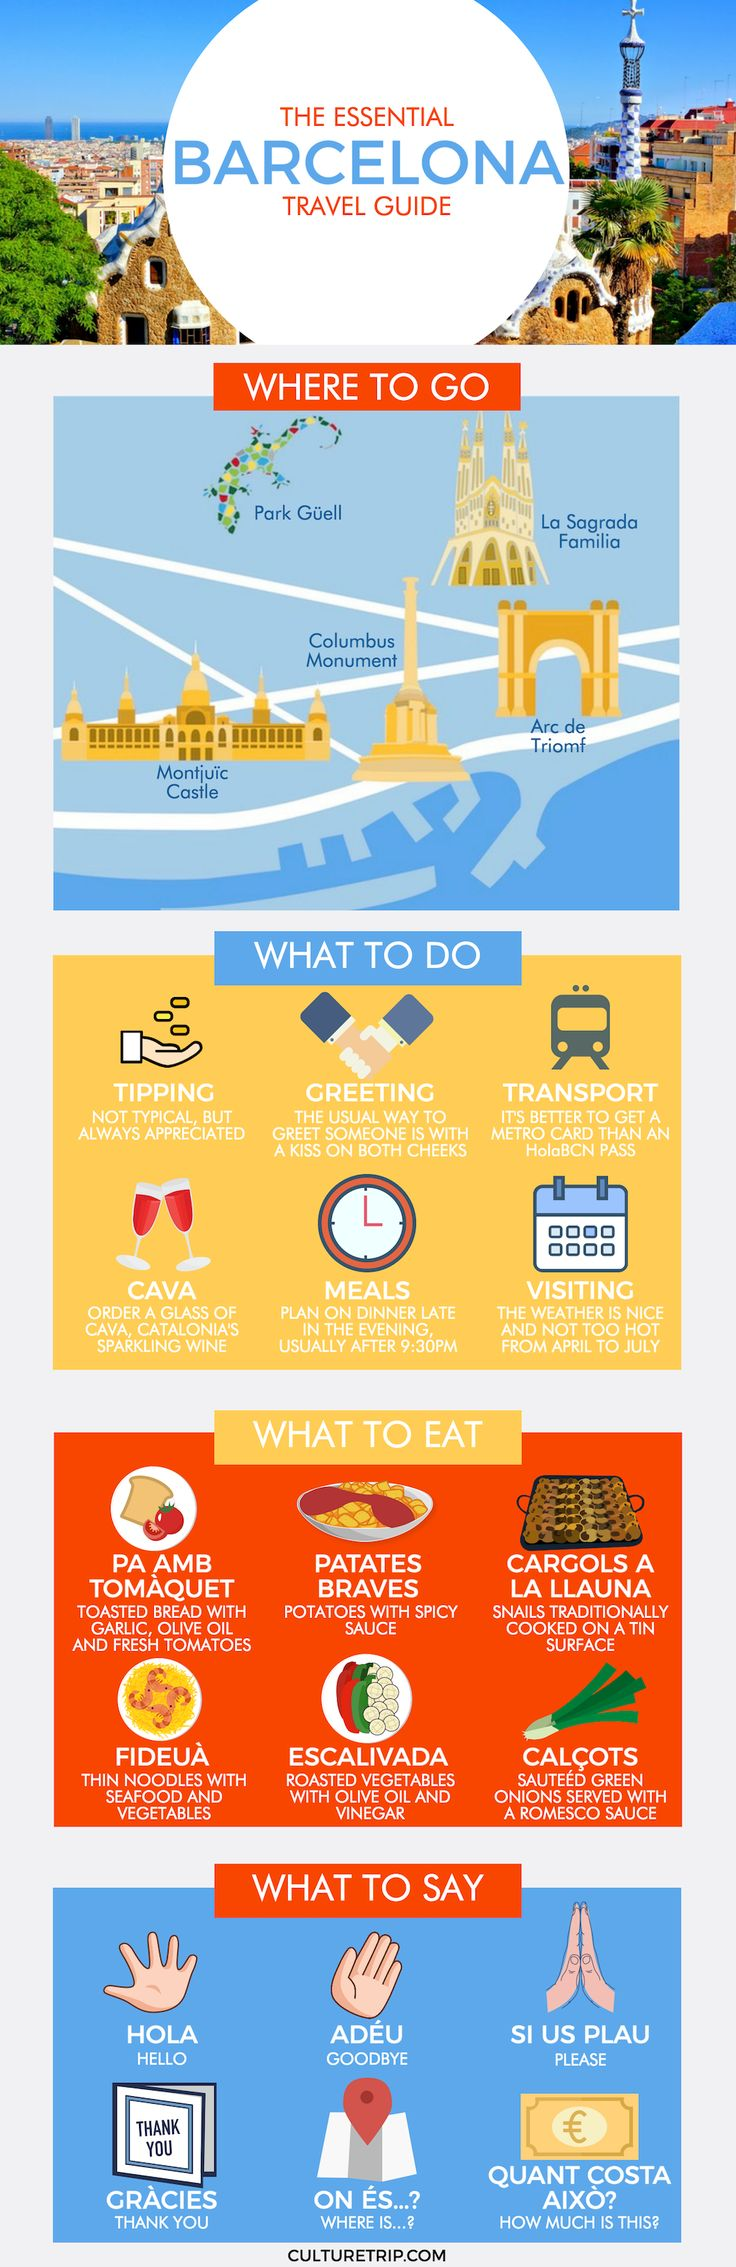 The Essential Travel Guide to Barcelona (Infographic)